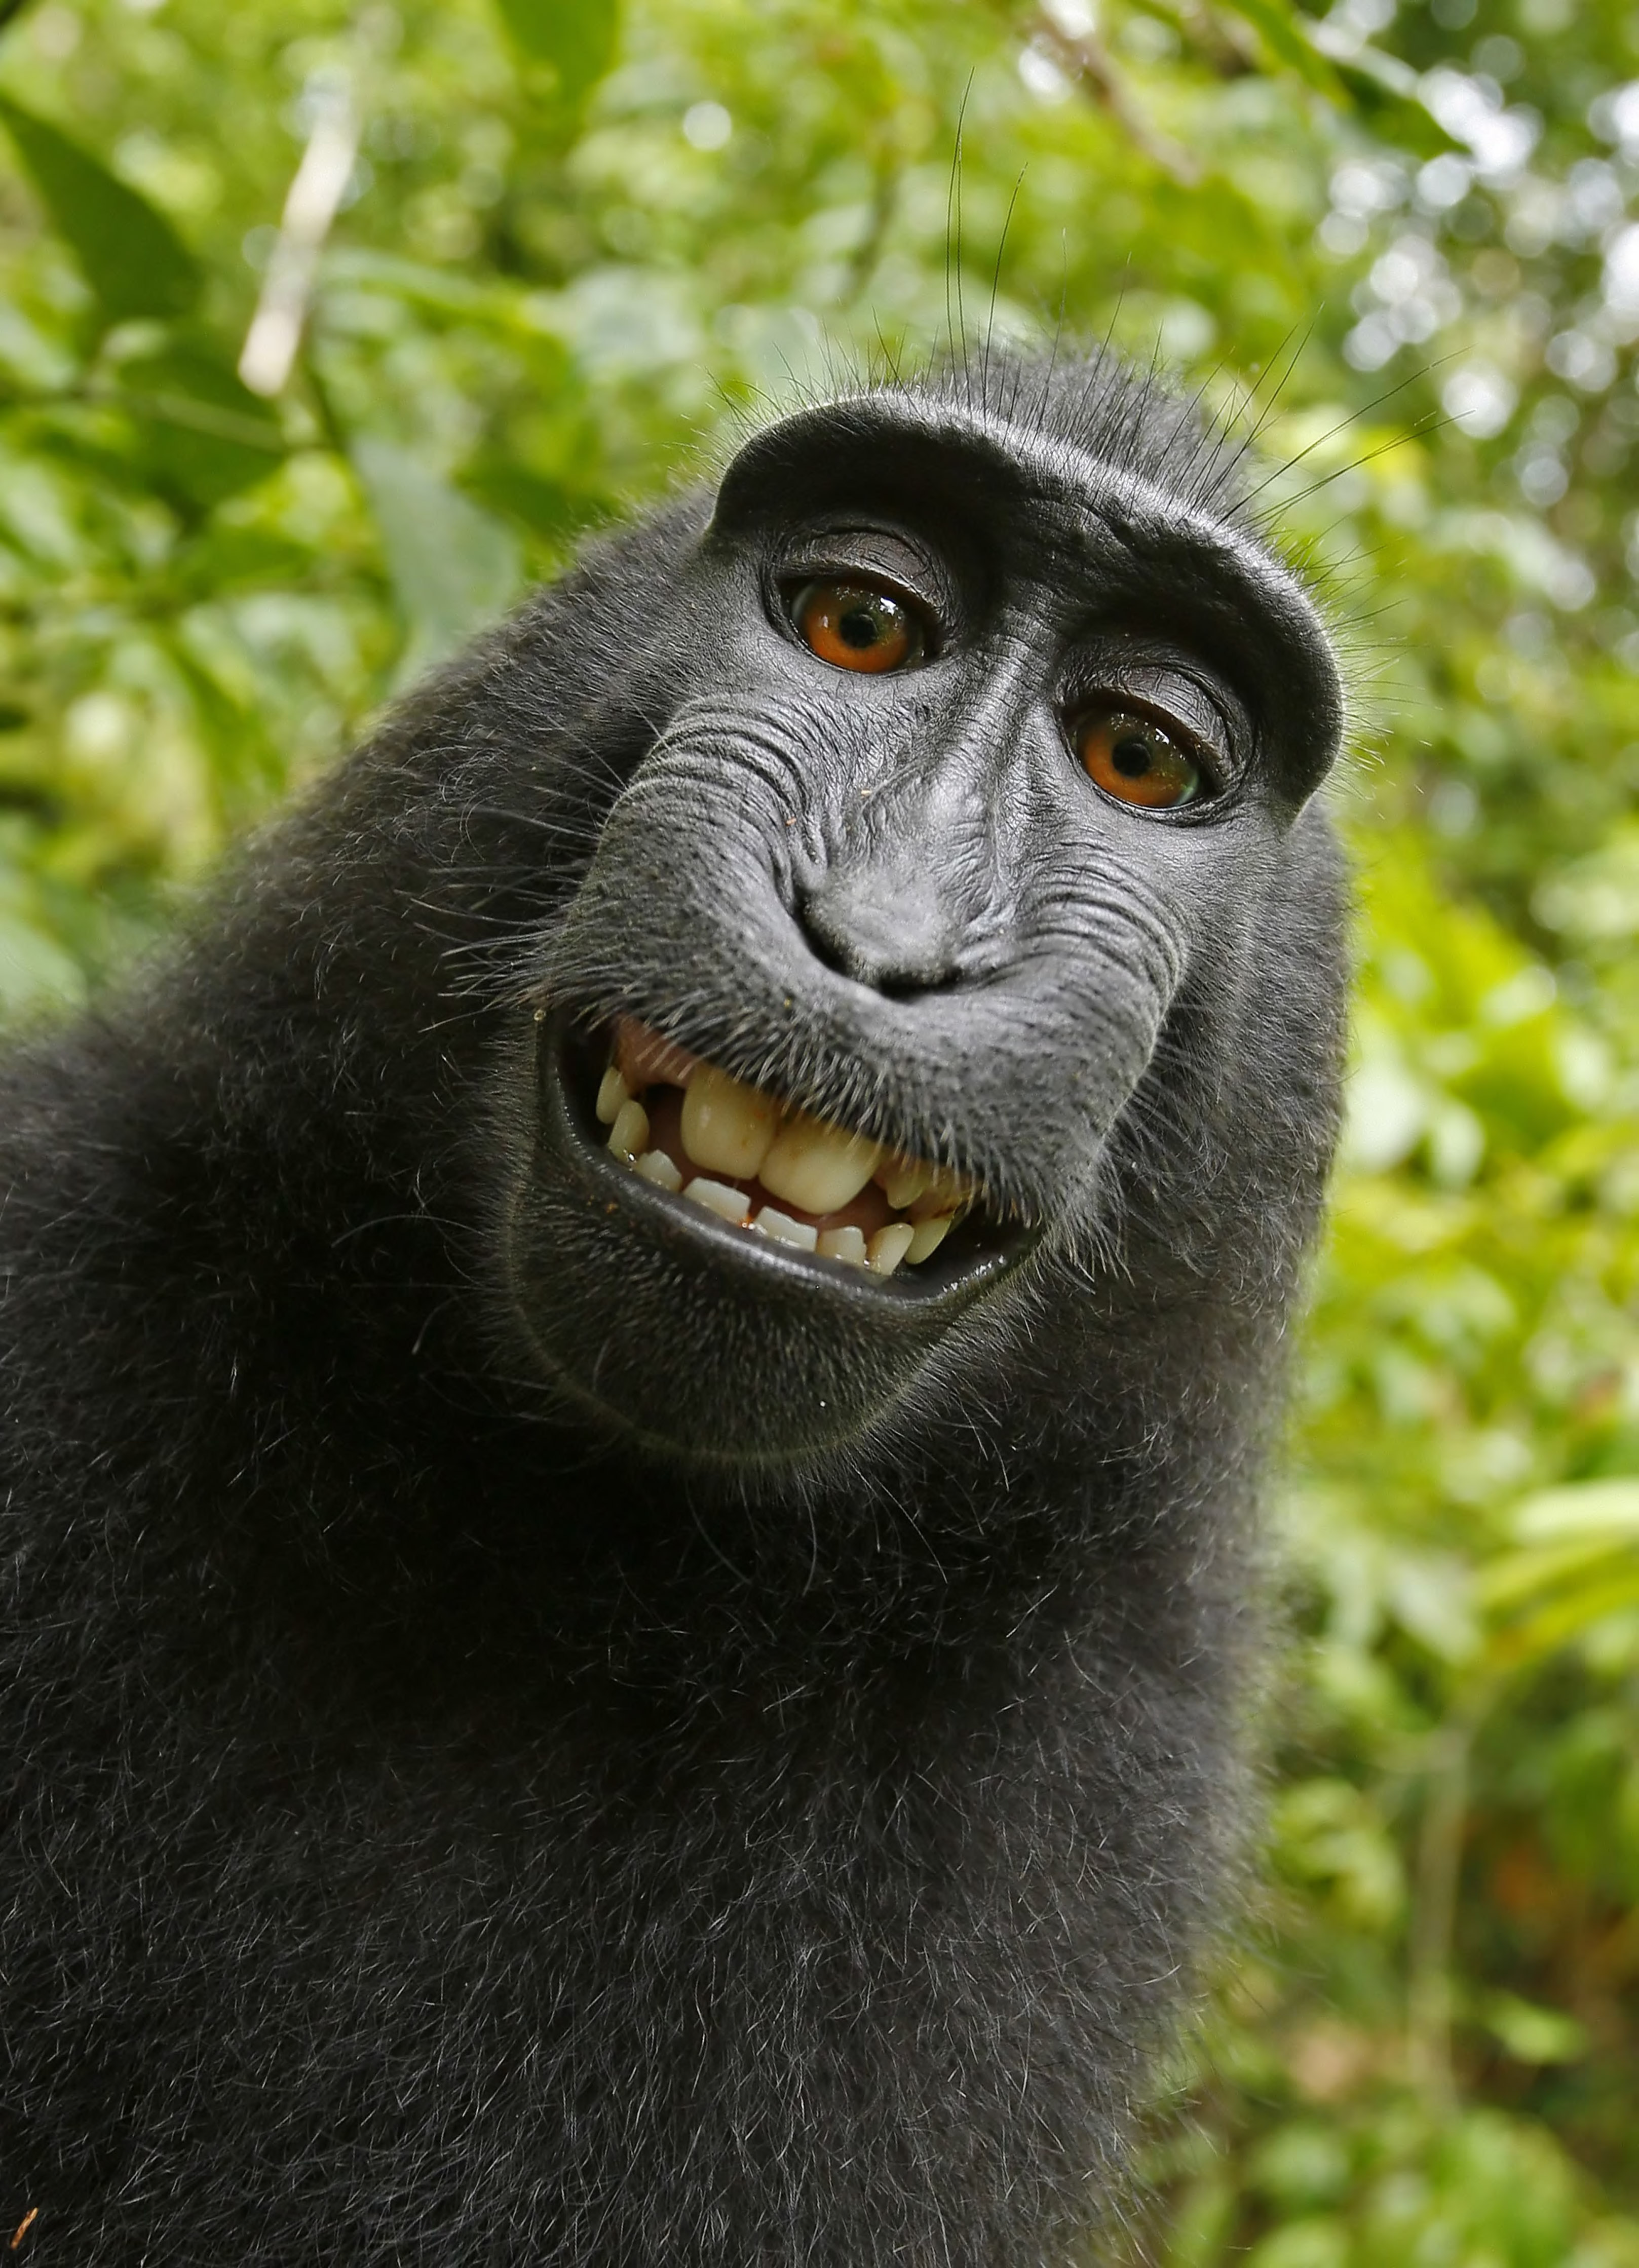 This 2011 photo provided by People for the Ethical Treatment of Animals (PETA) shows a selfie taken by a macaque monkey on the Indonesian island of Sulawesi with a camera that was positioned by British nature photographer David Slater. The photo is part of a court exhibit in a lawsuit filed by PETA in San Francisco on Tuesday, Sept. 22, 2015, which says that the monkey, and not Slater, should be declared the copyright owner of the photos. Slater has argued that, as the �intellect behind the photos,� he is the copyright owner since he set up the camera so that such a photo could be produced if a monkey approached it a pressed the button. (David Slater/Court exhibit provided by PETA via AP)